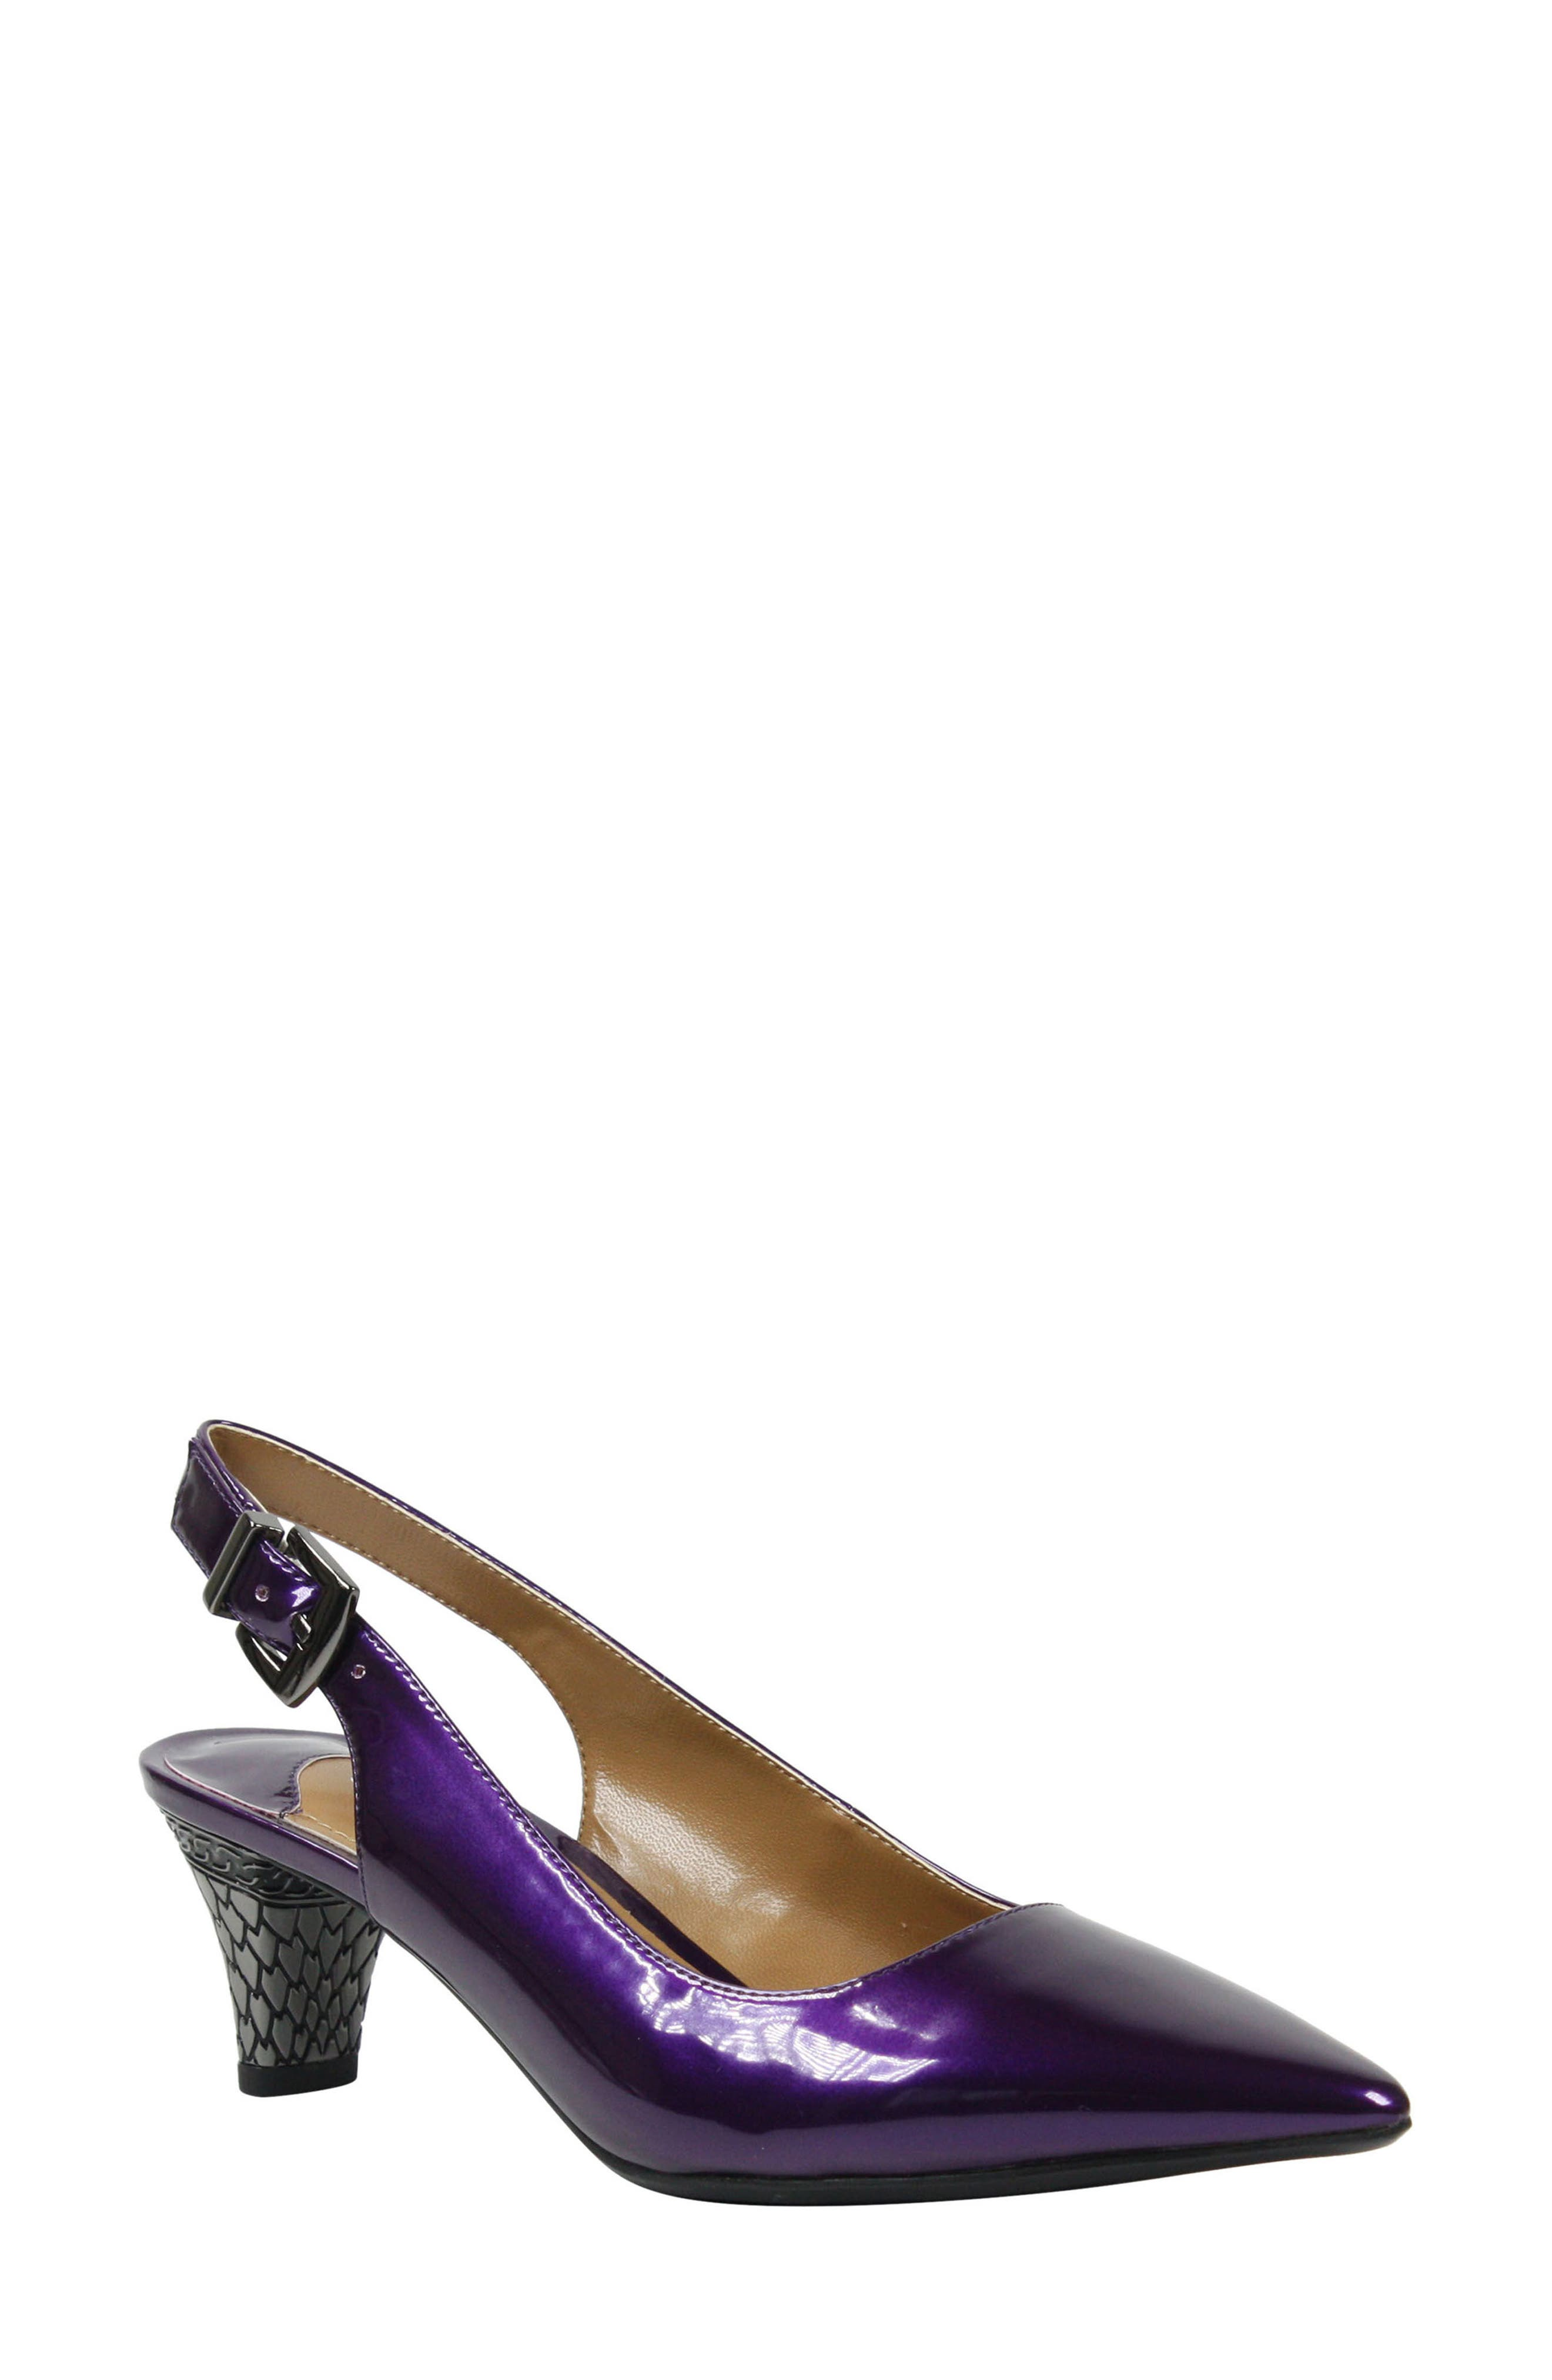 Metallic scales shine from a low, tapered heel, giving lasting-impression Art-Deco flair to a sleek pointed-toe pump. Style Name:J. Renee Mayetta Slingback Pump (Women). Style Number: 5475306. Available in stores.